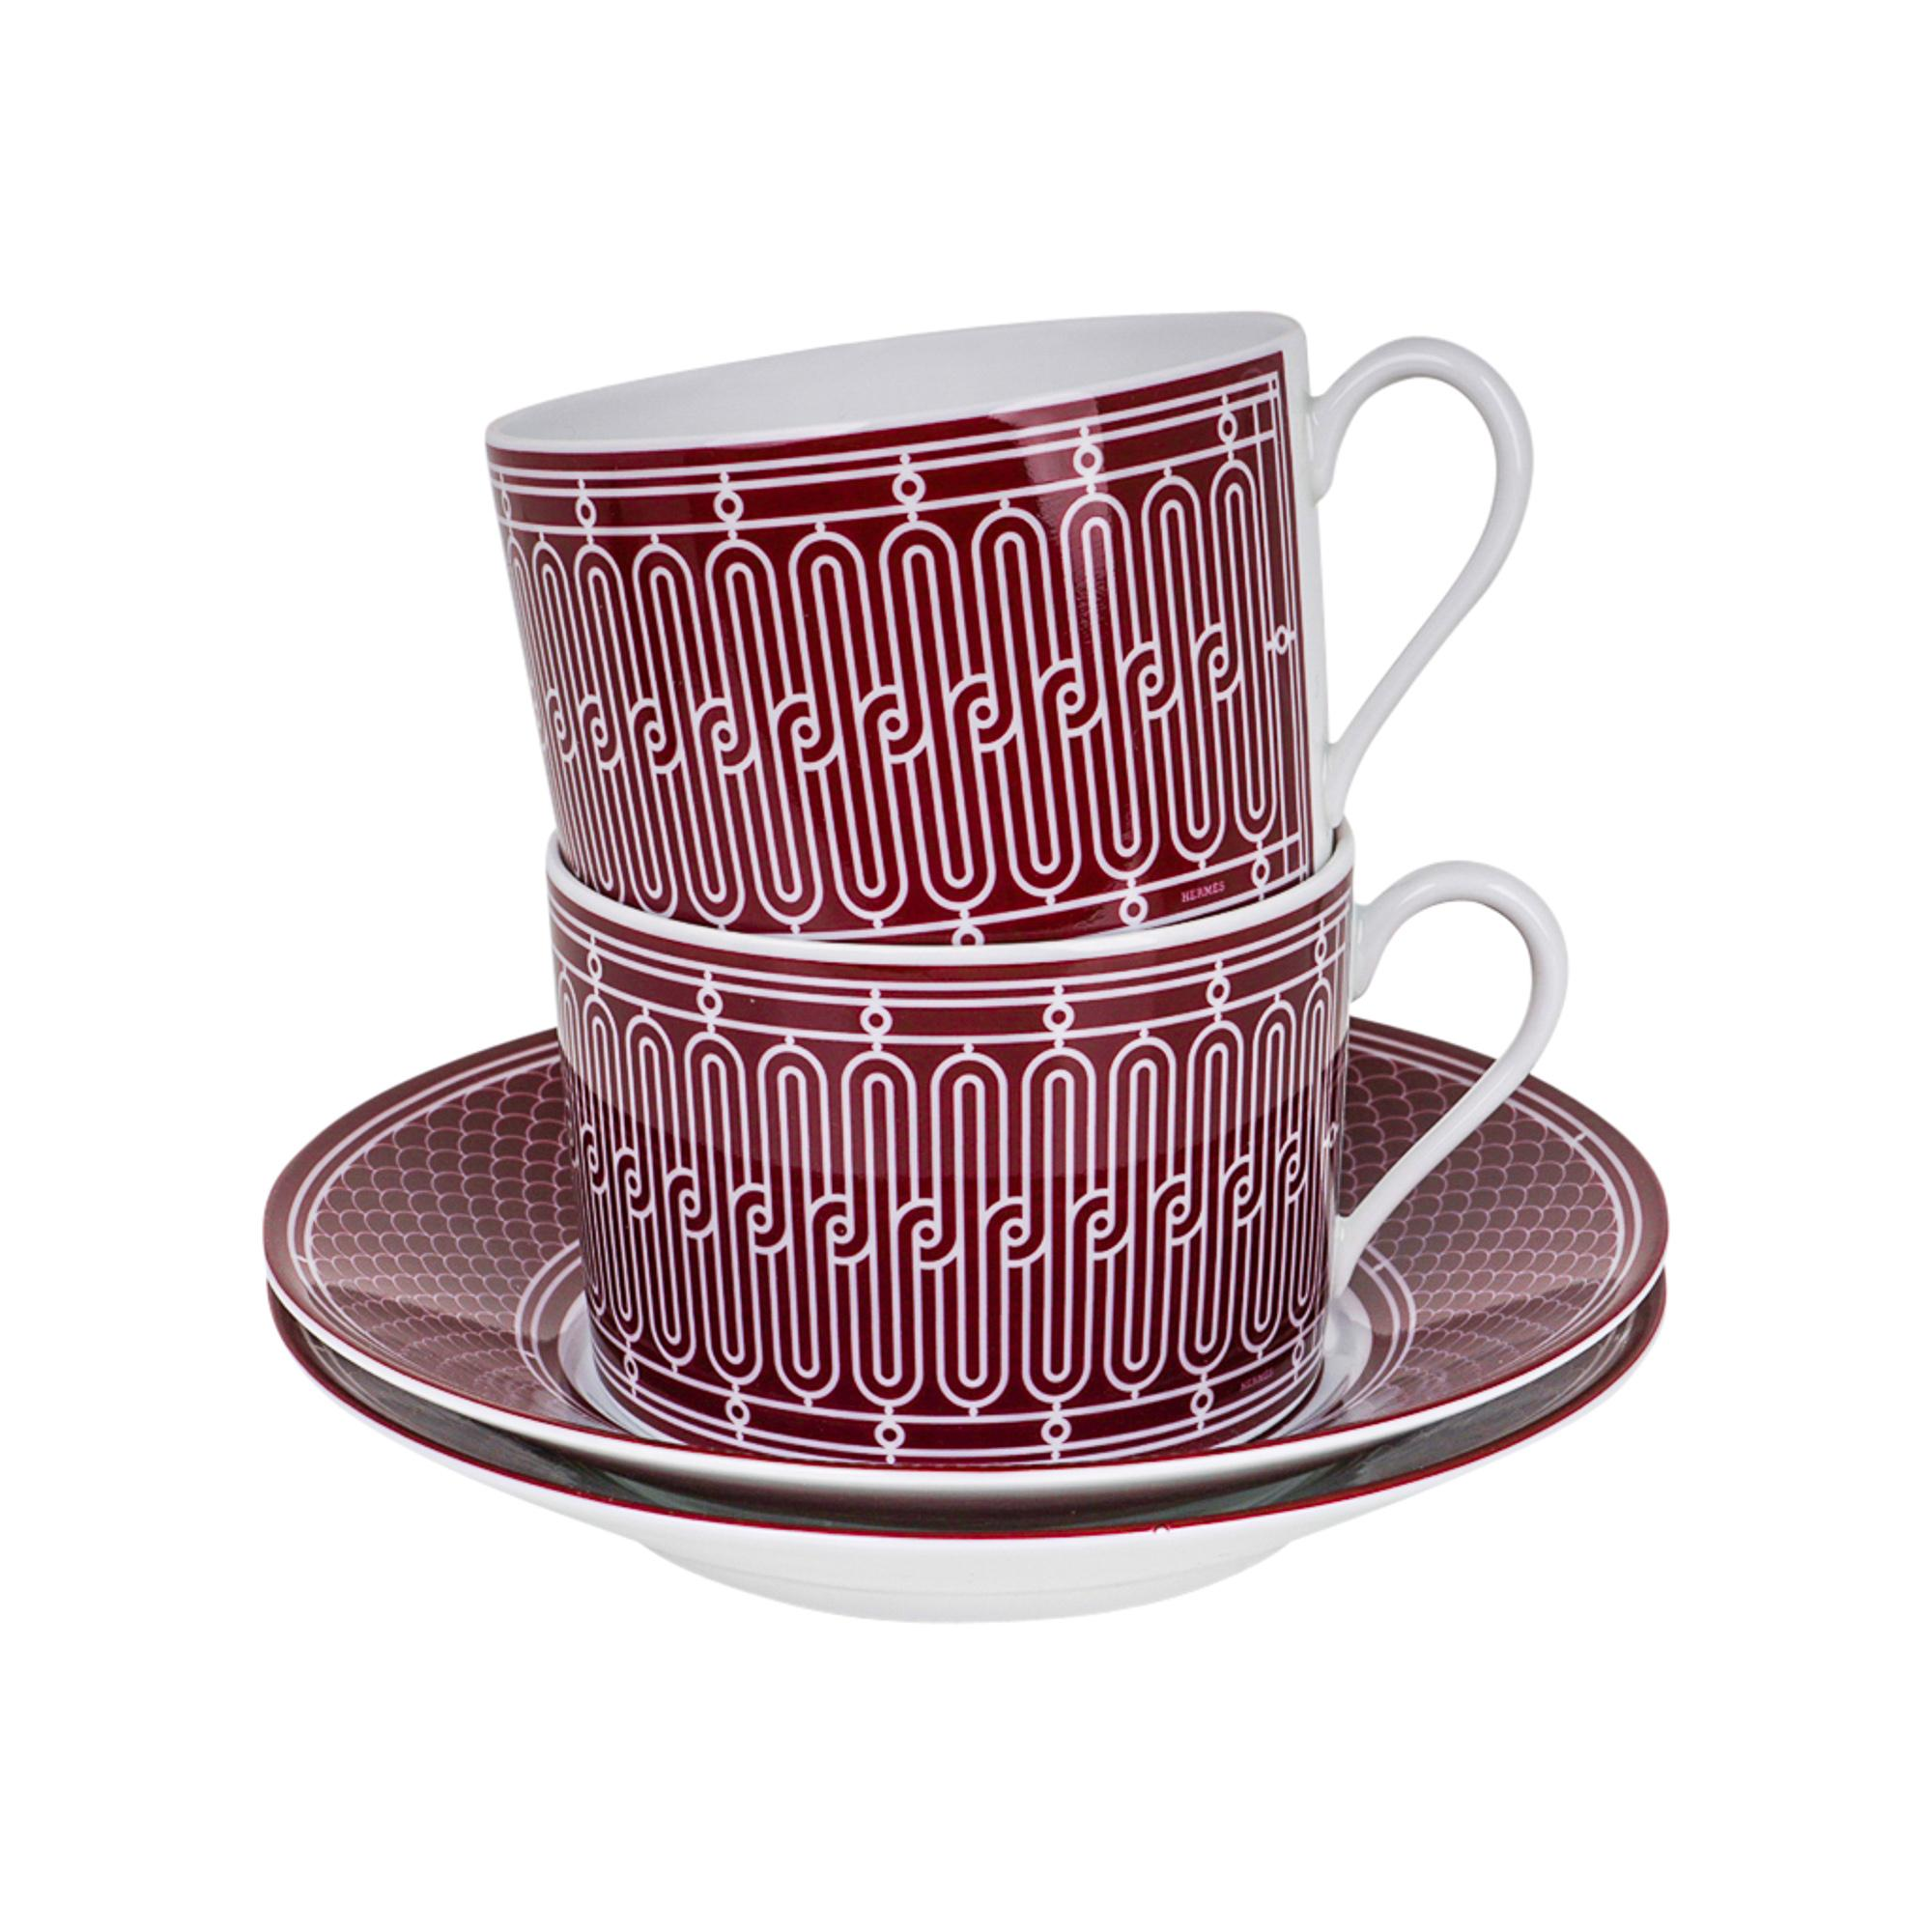 Hermes H Deco Rouge Tea Cup and Saucer Porcelain Set of 2 New w/ Box